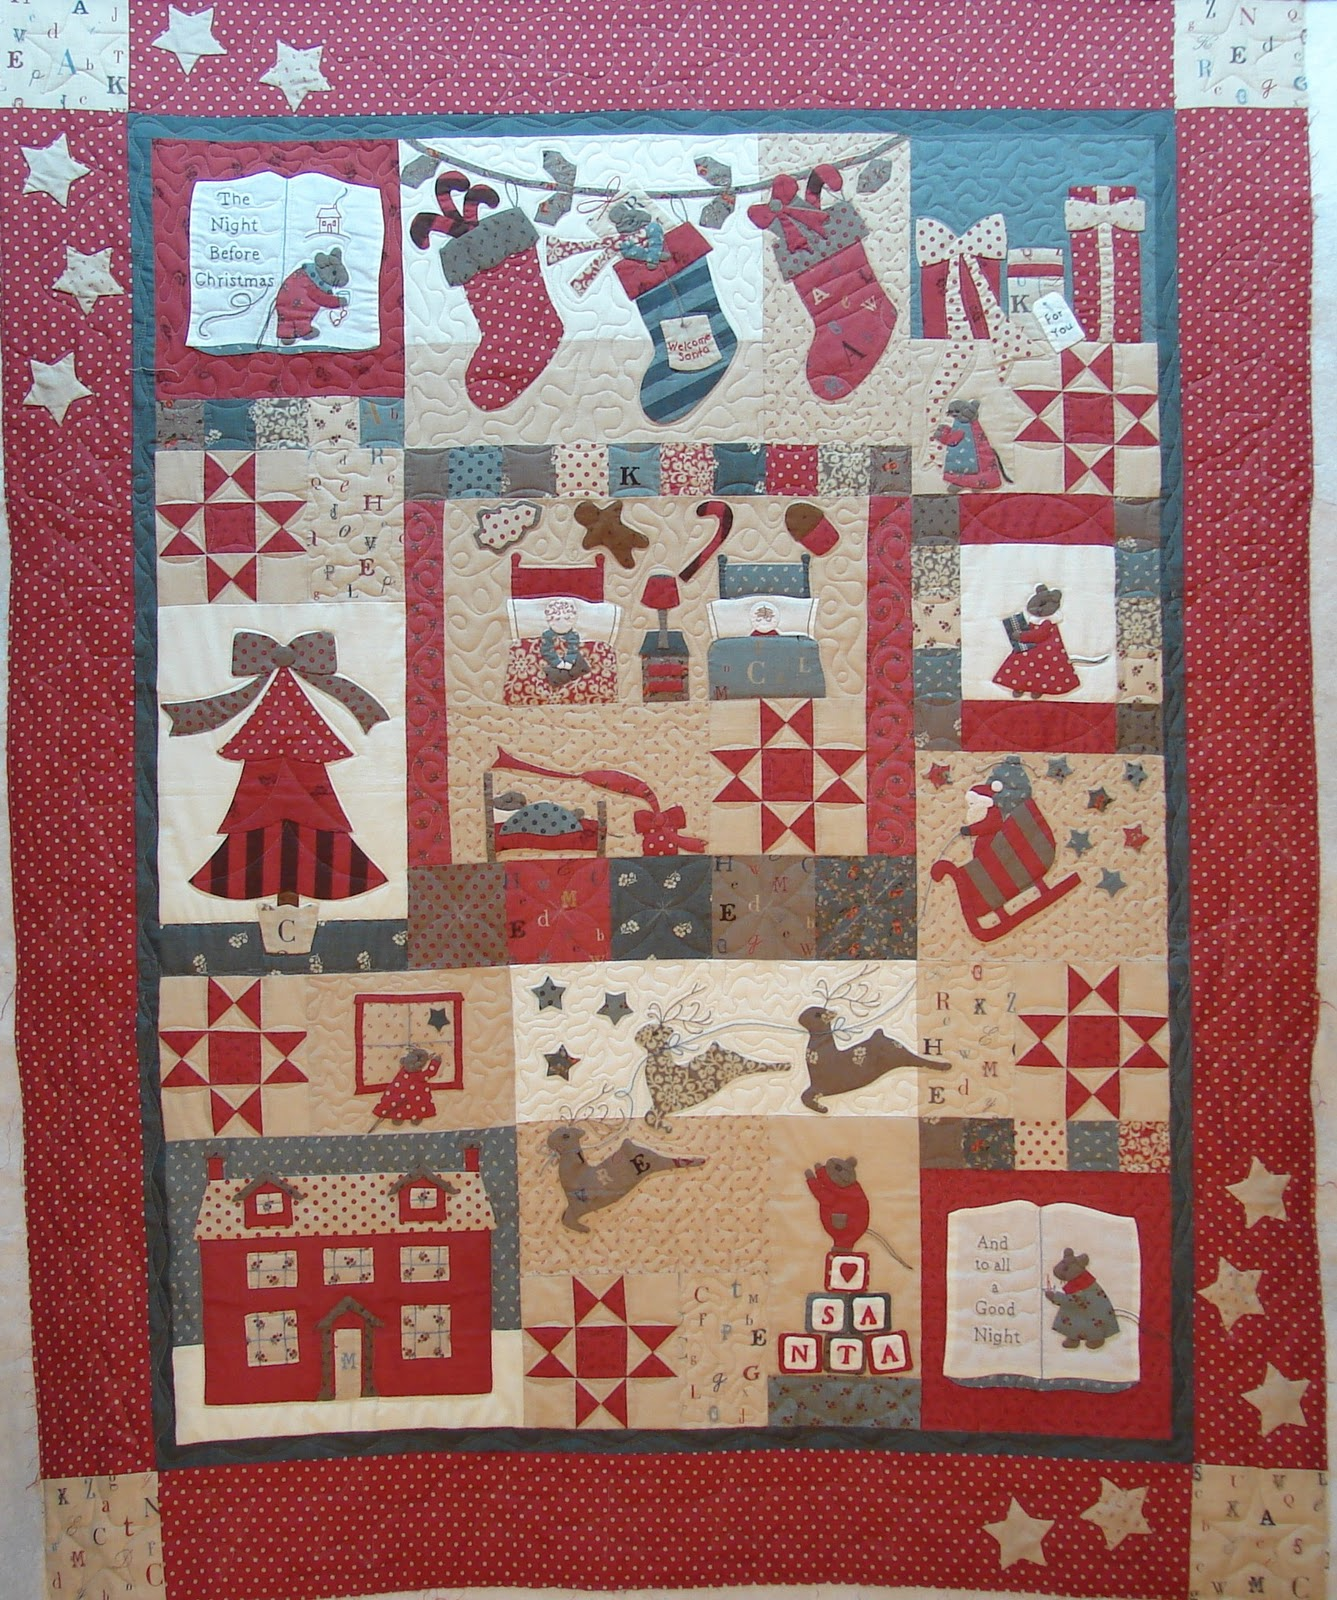 Quilt Vine: The Night Before Christmas